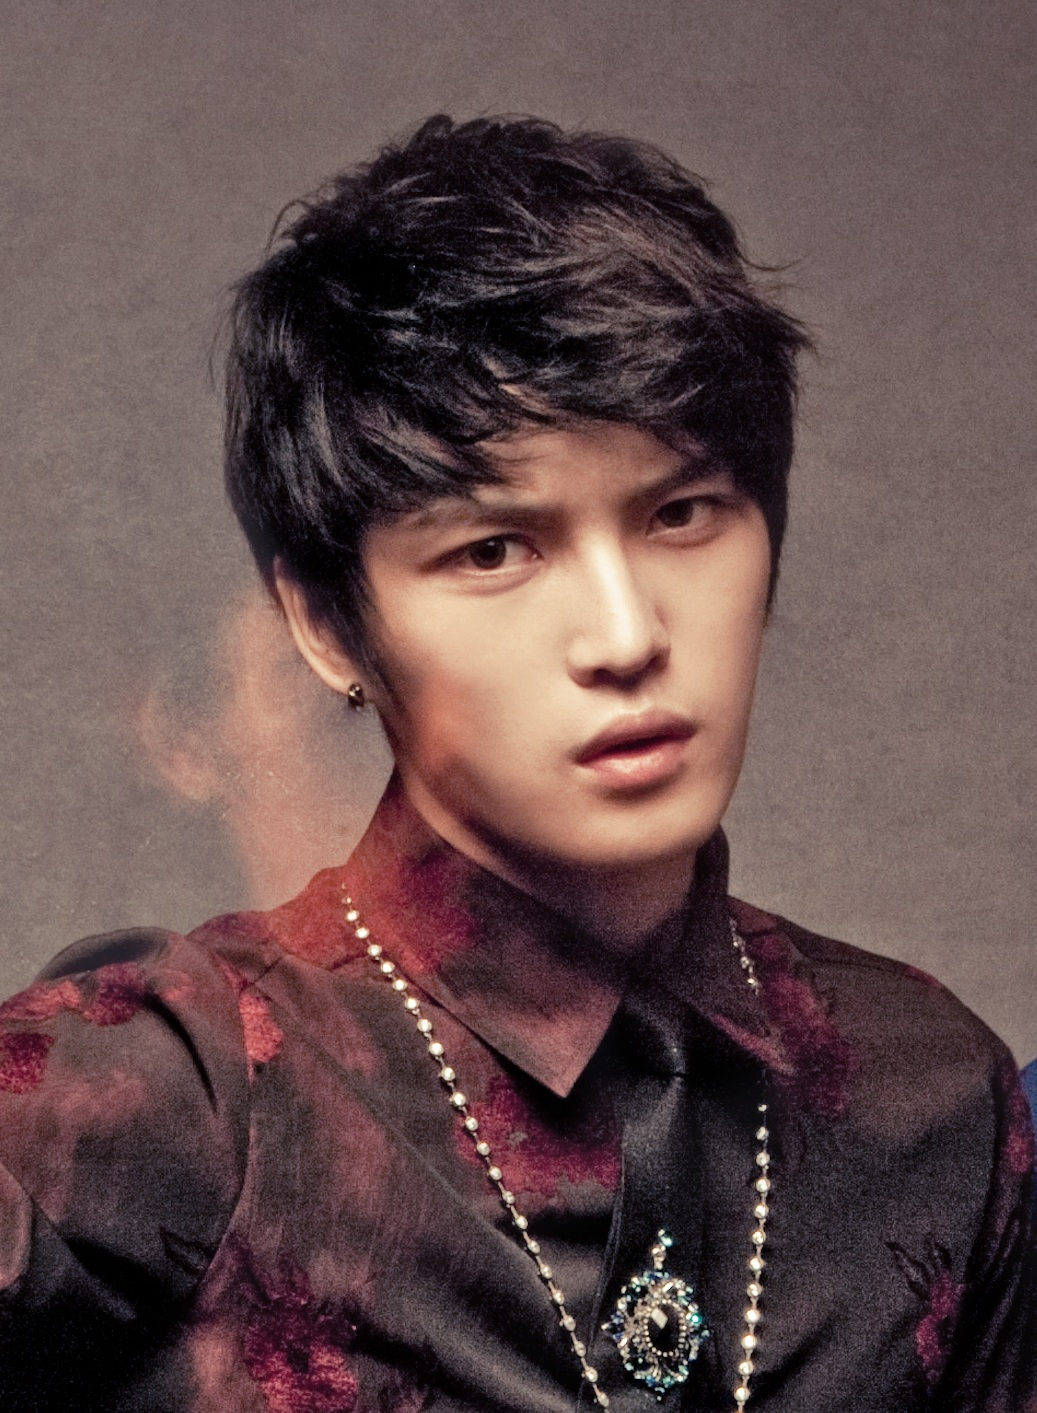 The 31-year old son of father (?) and mother(?), 178 cm tall Kim Jaejoong in 2017 photo